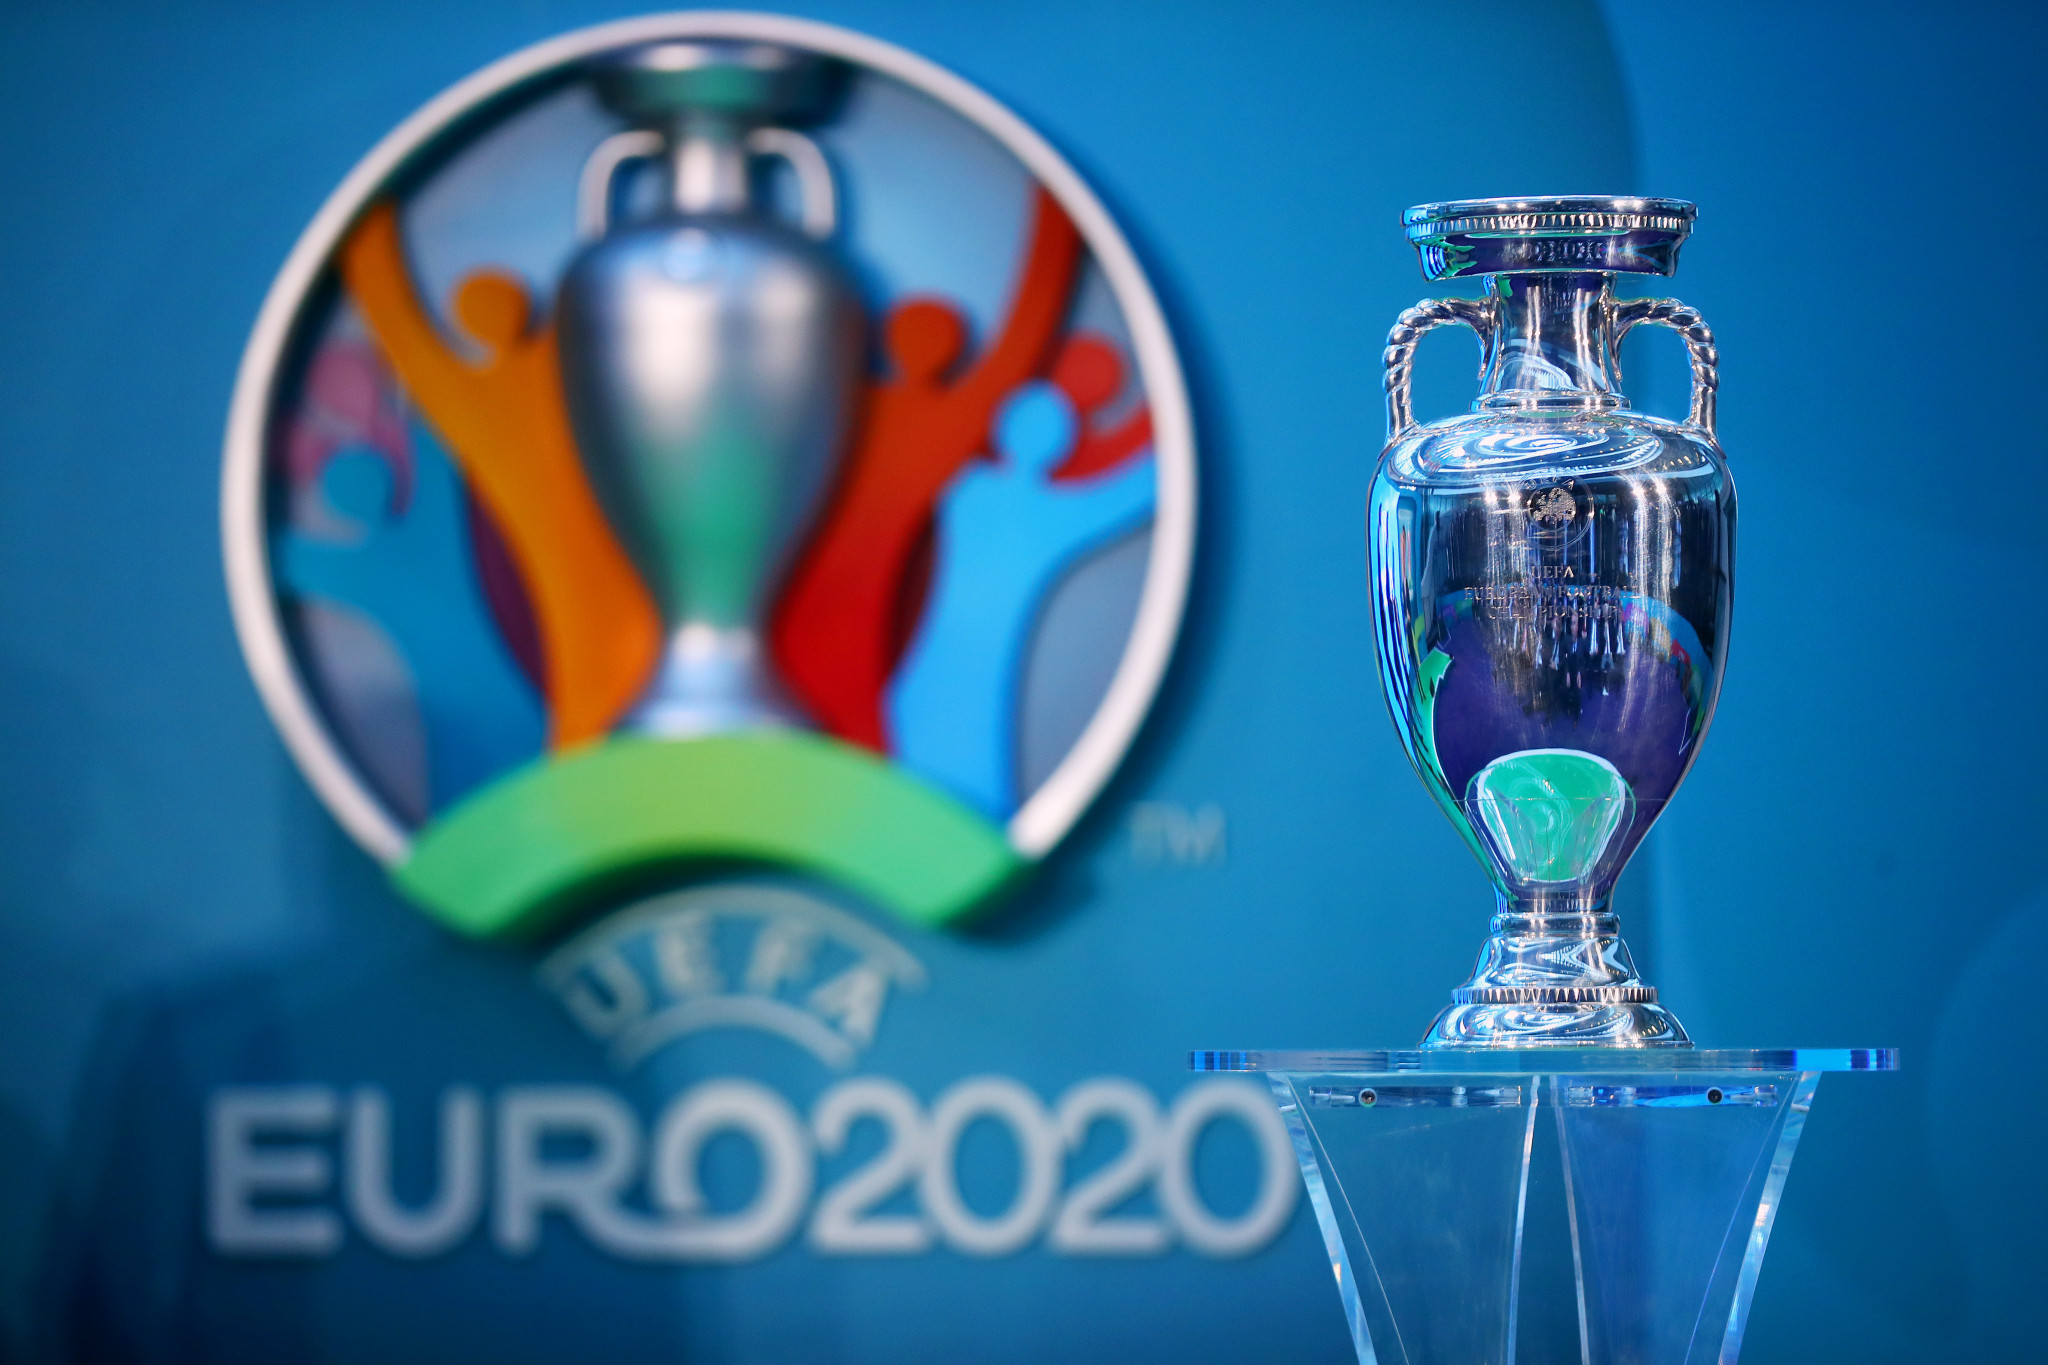 Three cities risk being cut as Euro 2020 hosts over lack of capacity guarantees